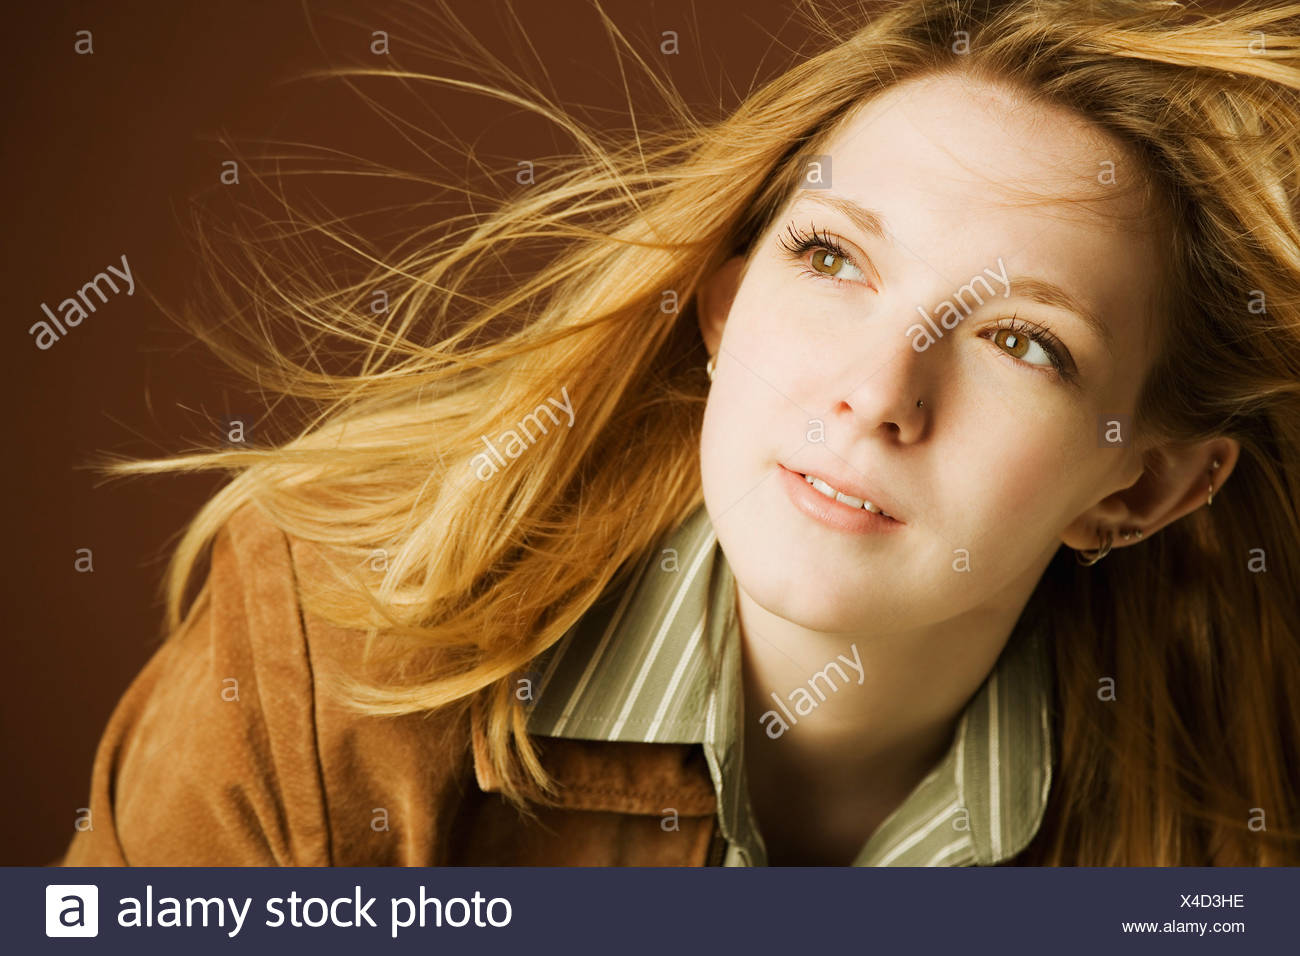 Woman in the wind - Stock Image